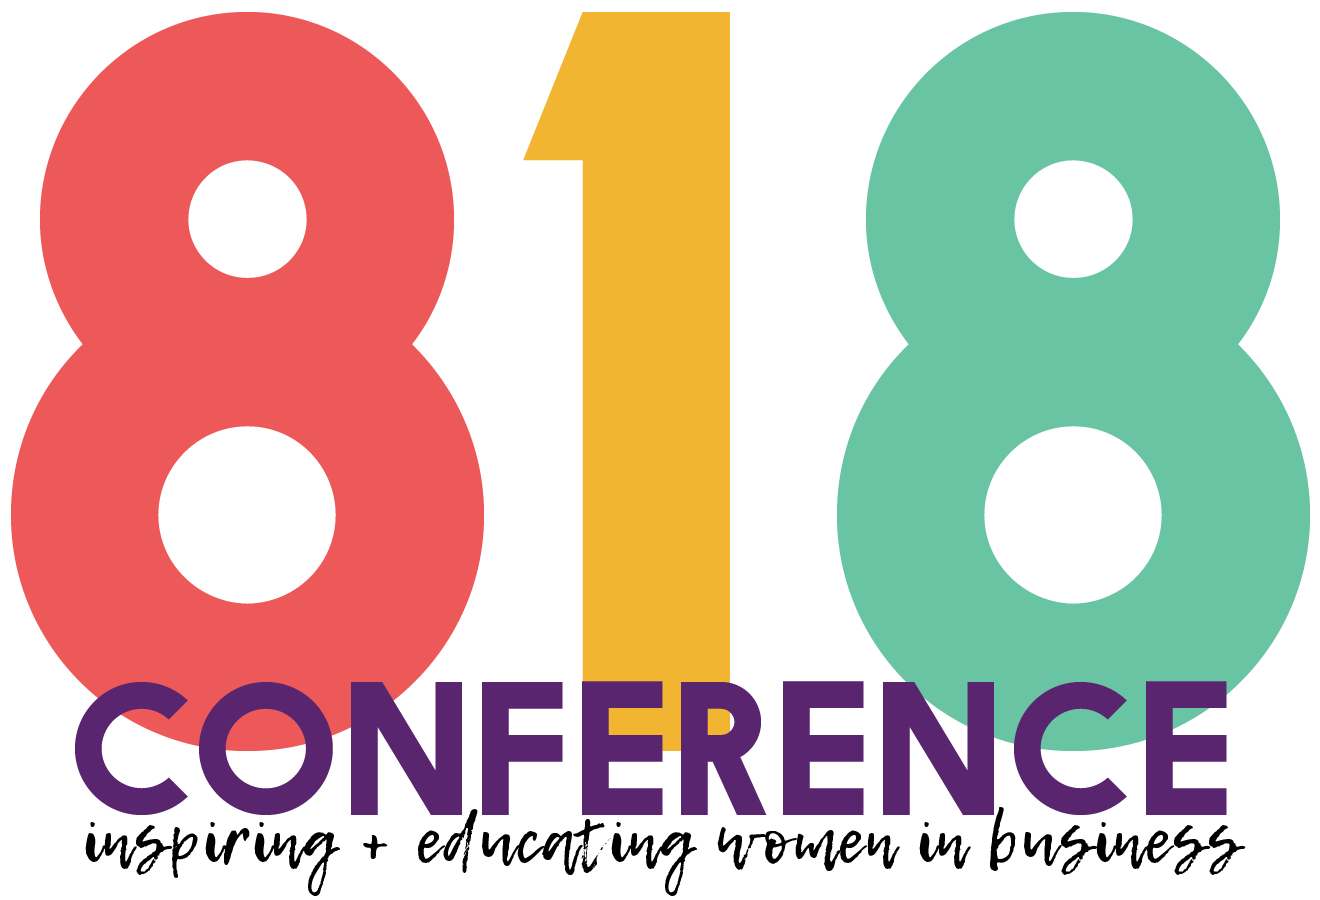 818 Conference